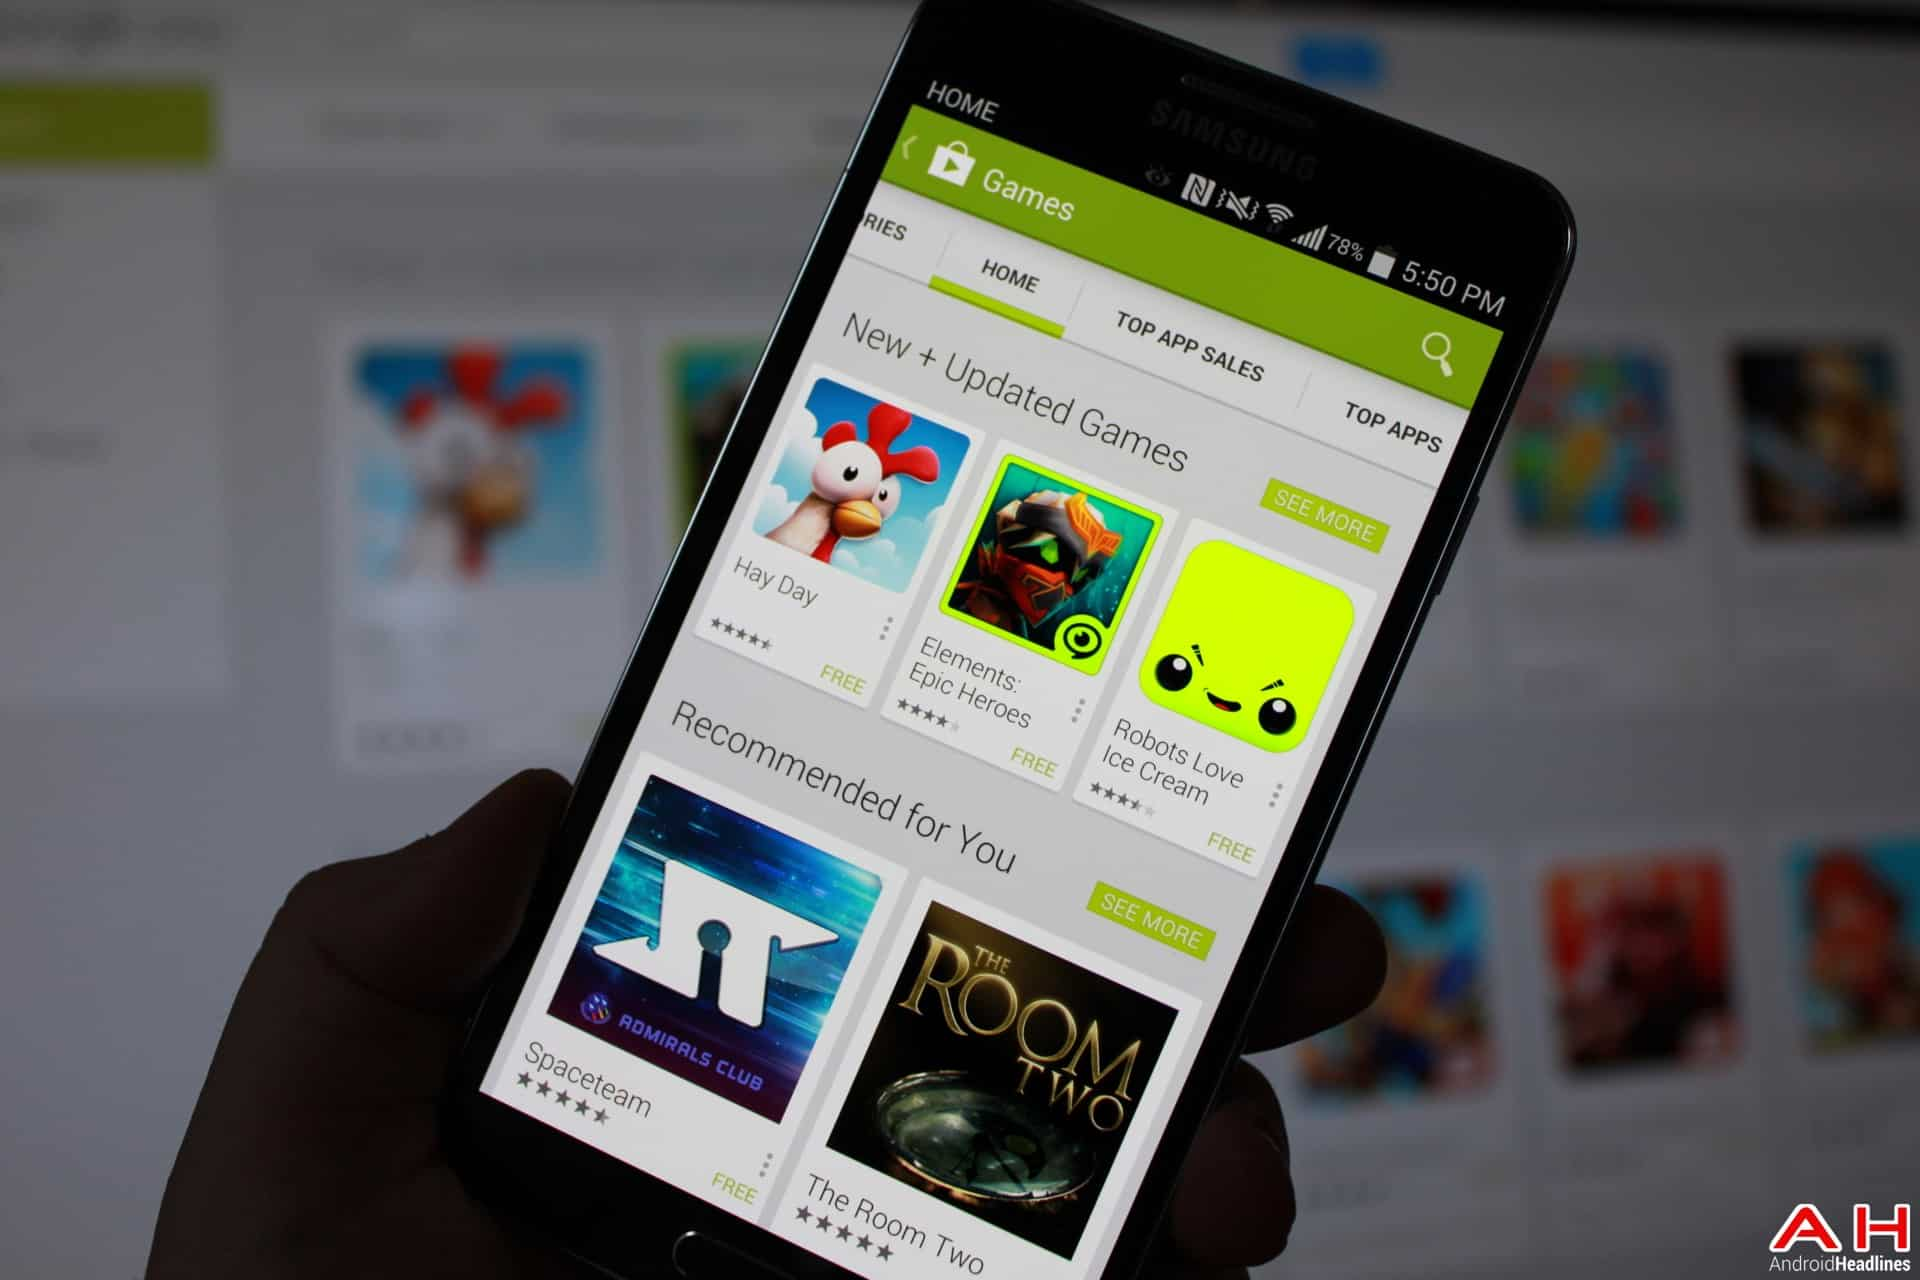 AH Google Play App Store Game of the week top 10 games android 1.5